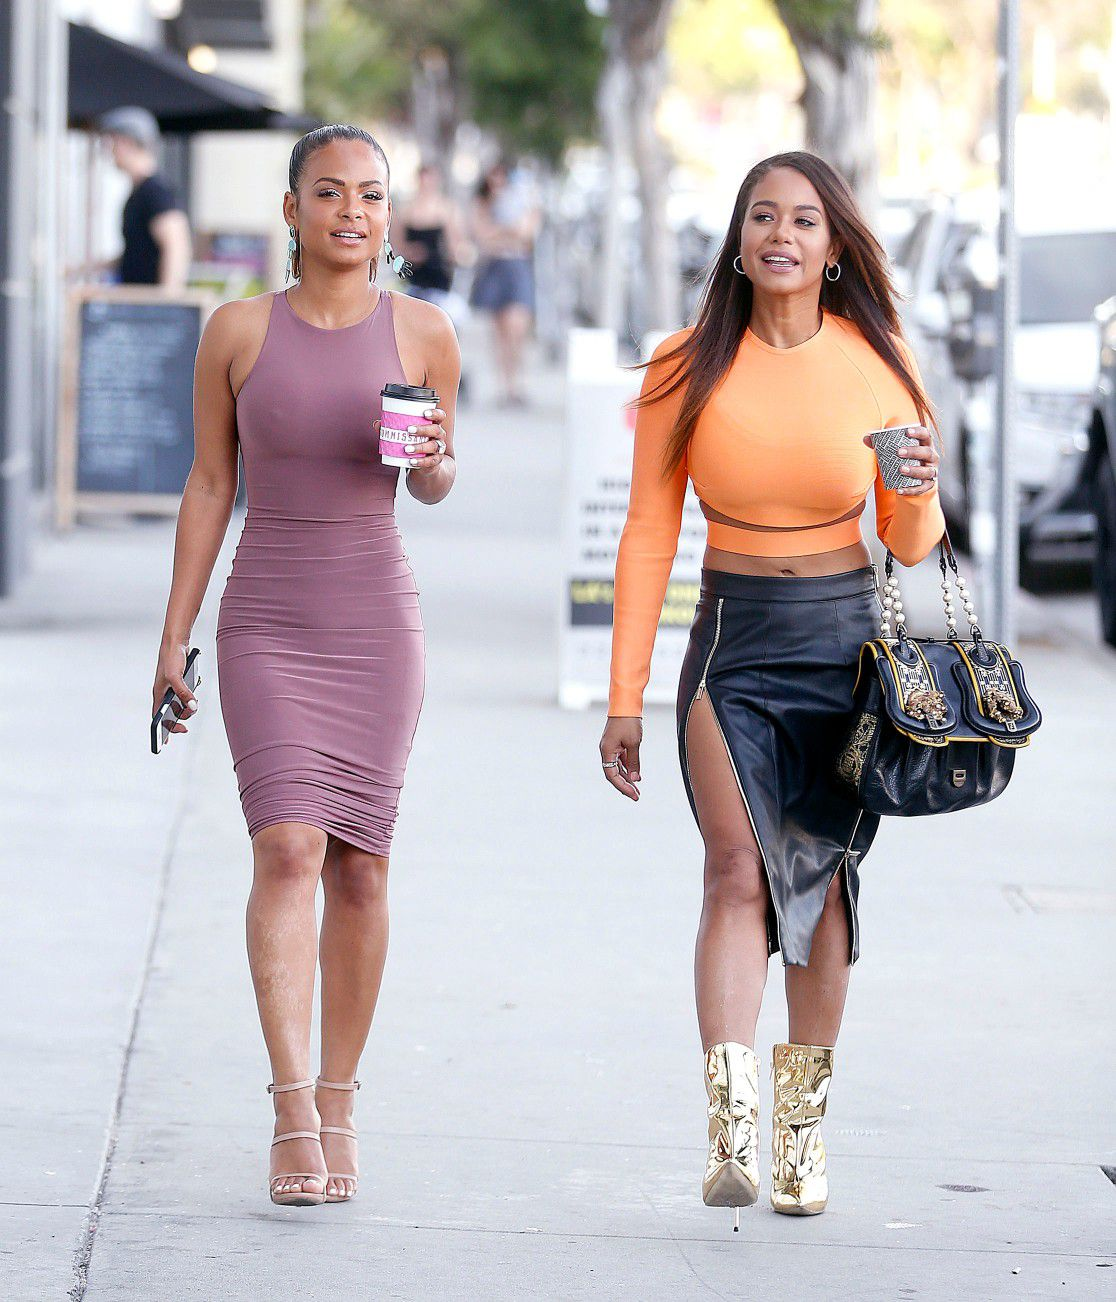 christina-milian-pokies-in-tight-dress-while-out-in-west-hollywood-4816